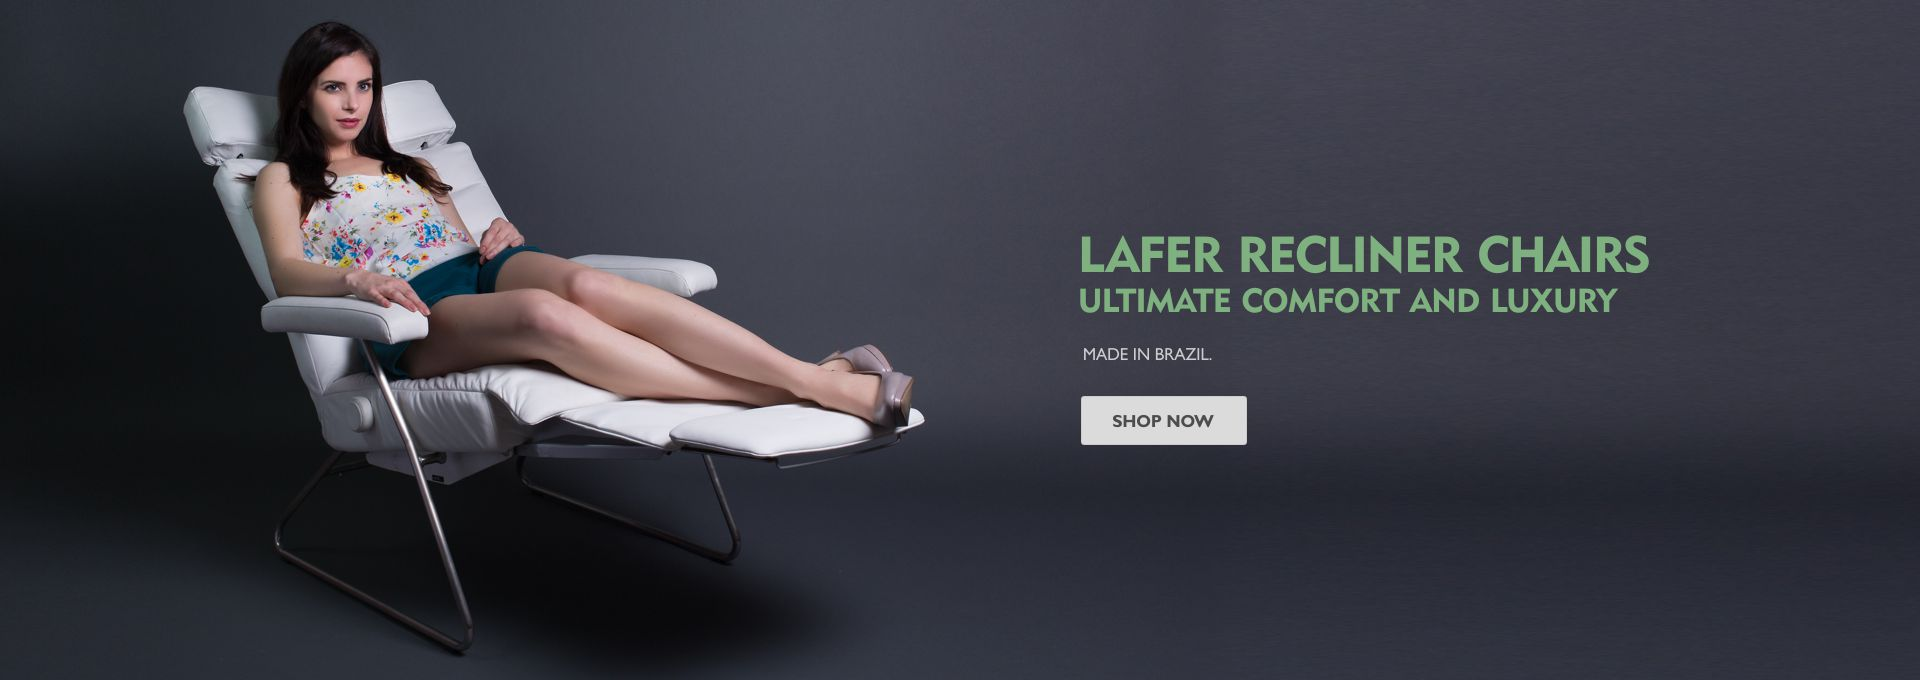 Lafer Recliners - Ultimate Luxury and Comfort